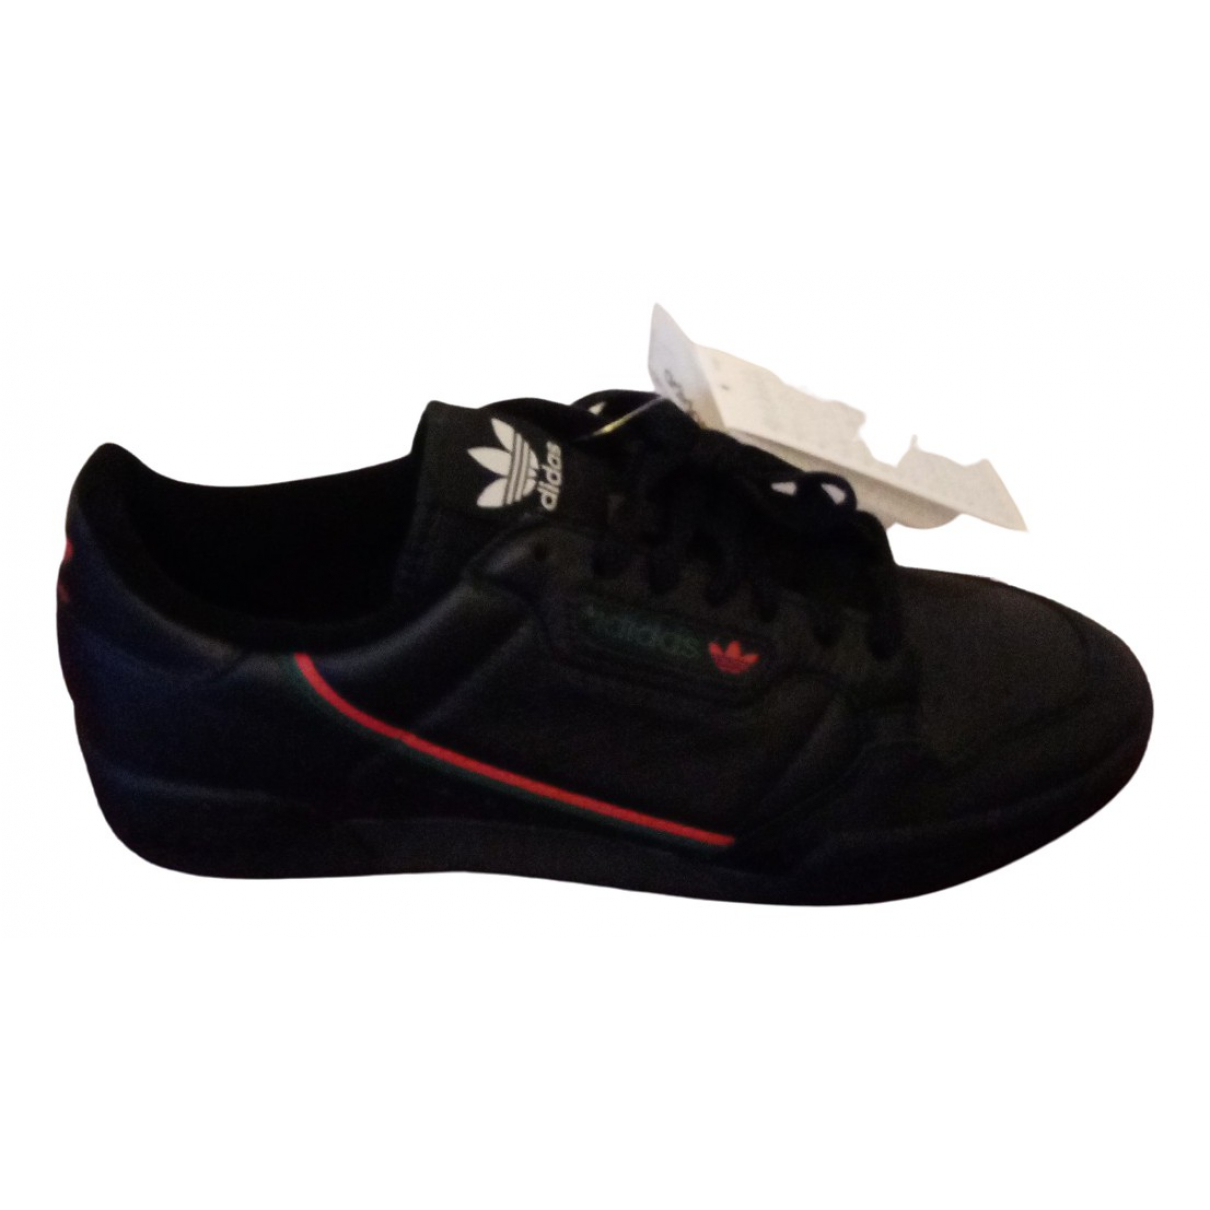 Adidas Continental 80 Black Leather Trainers for Men 8.5 UK